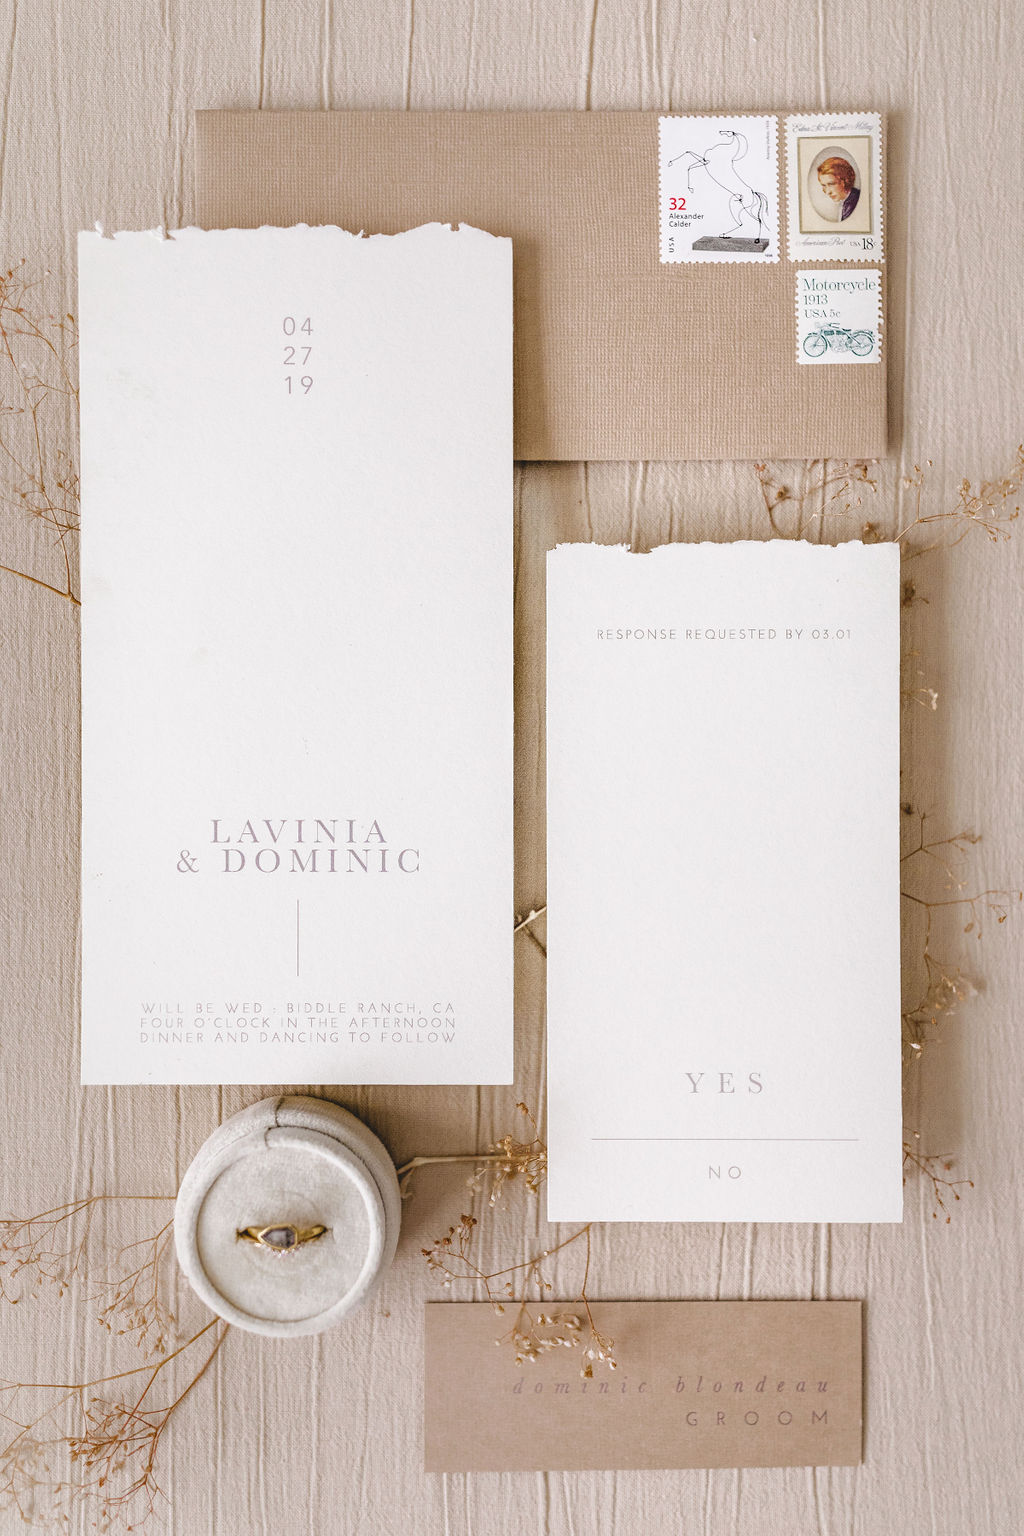 Wedding Card Cover for Lavinia and Dominic Wedding